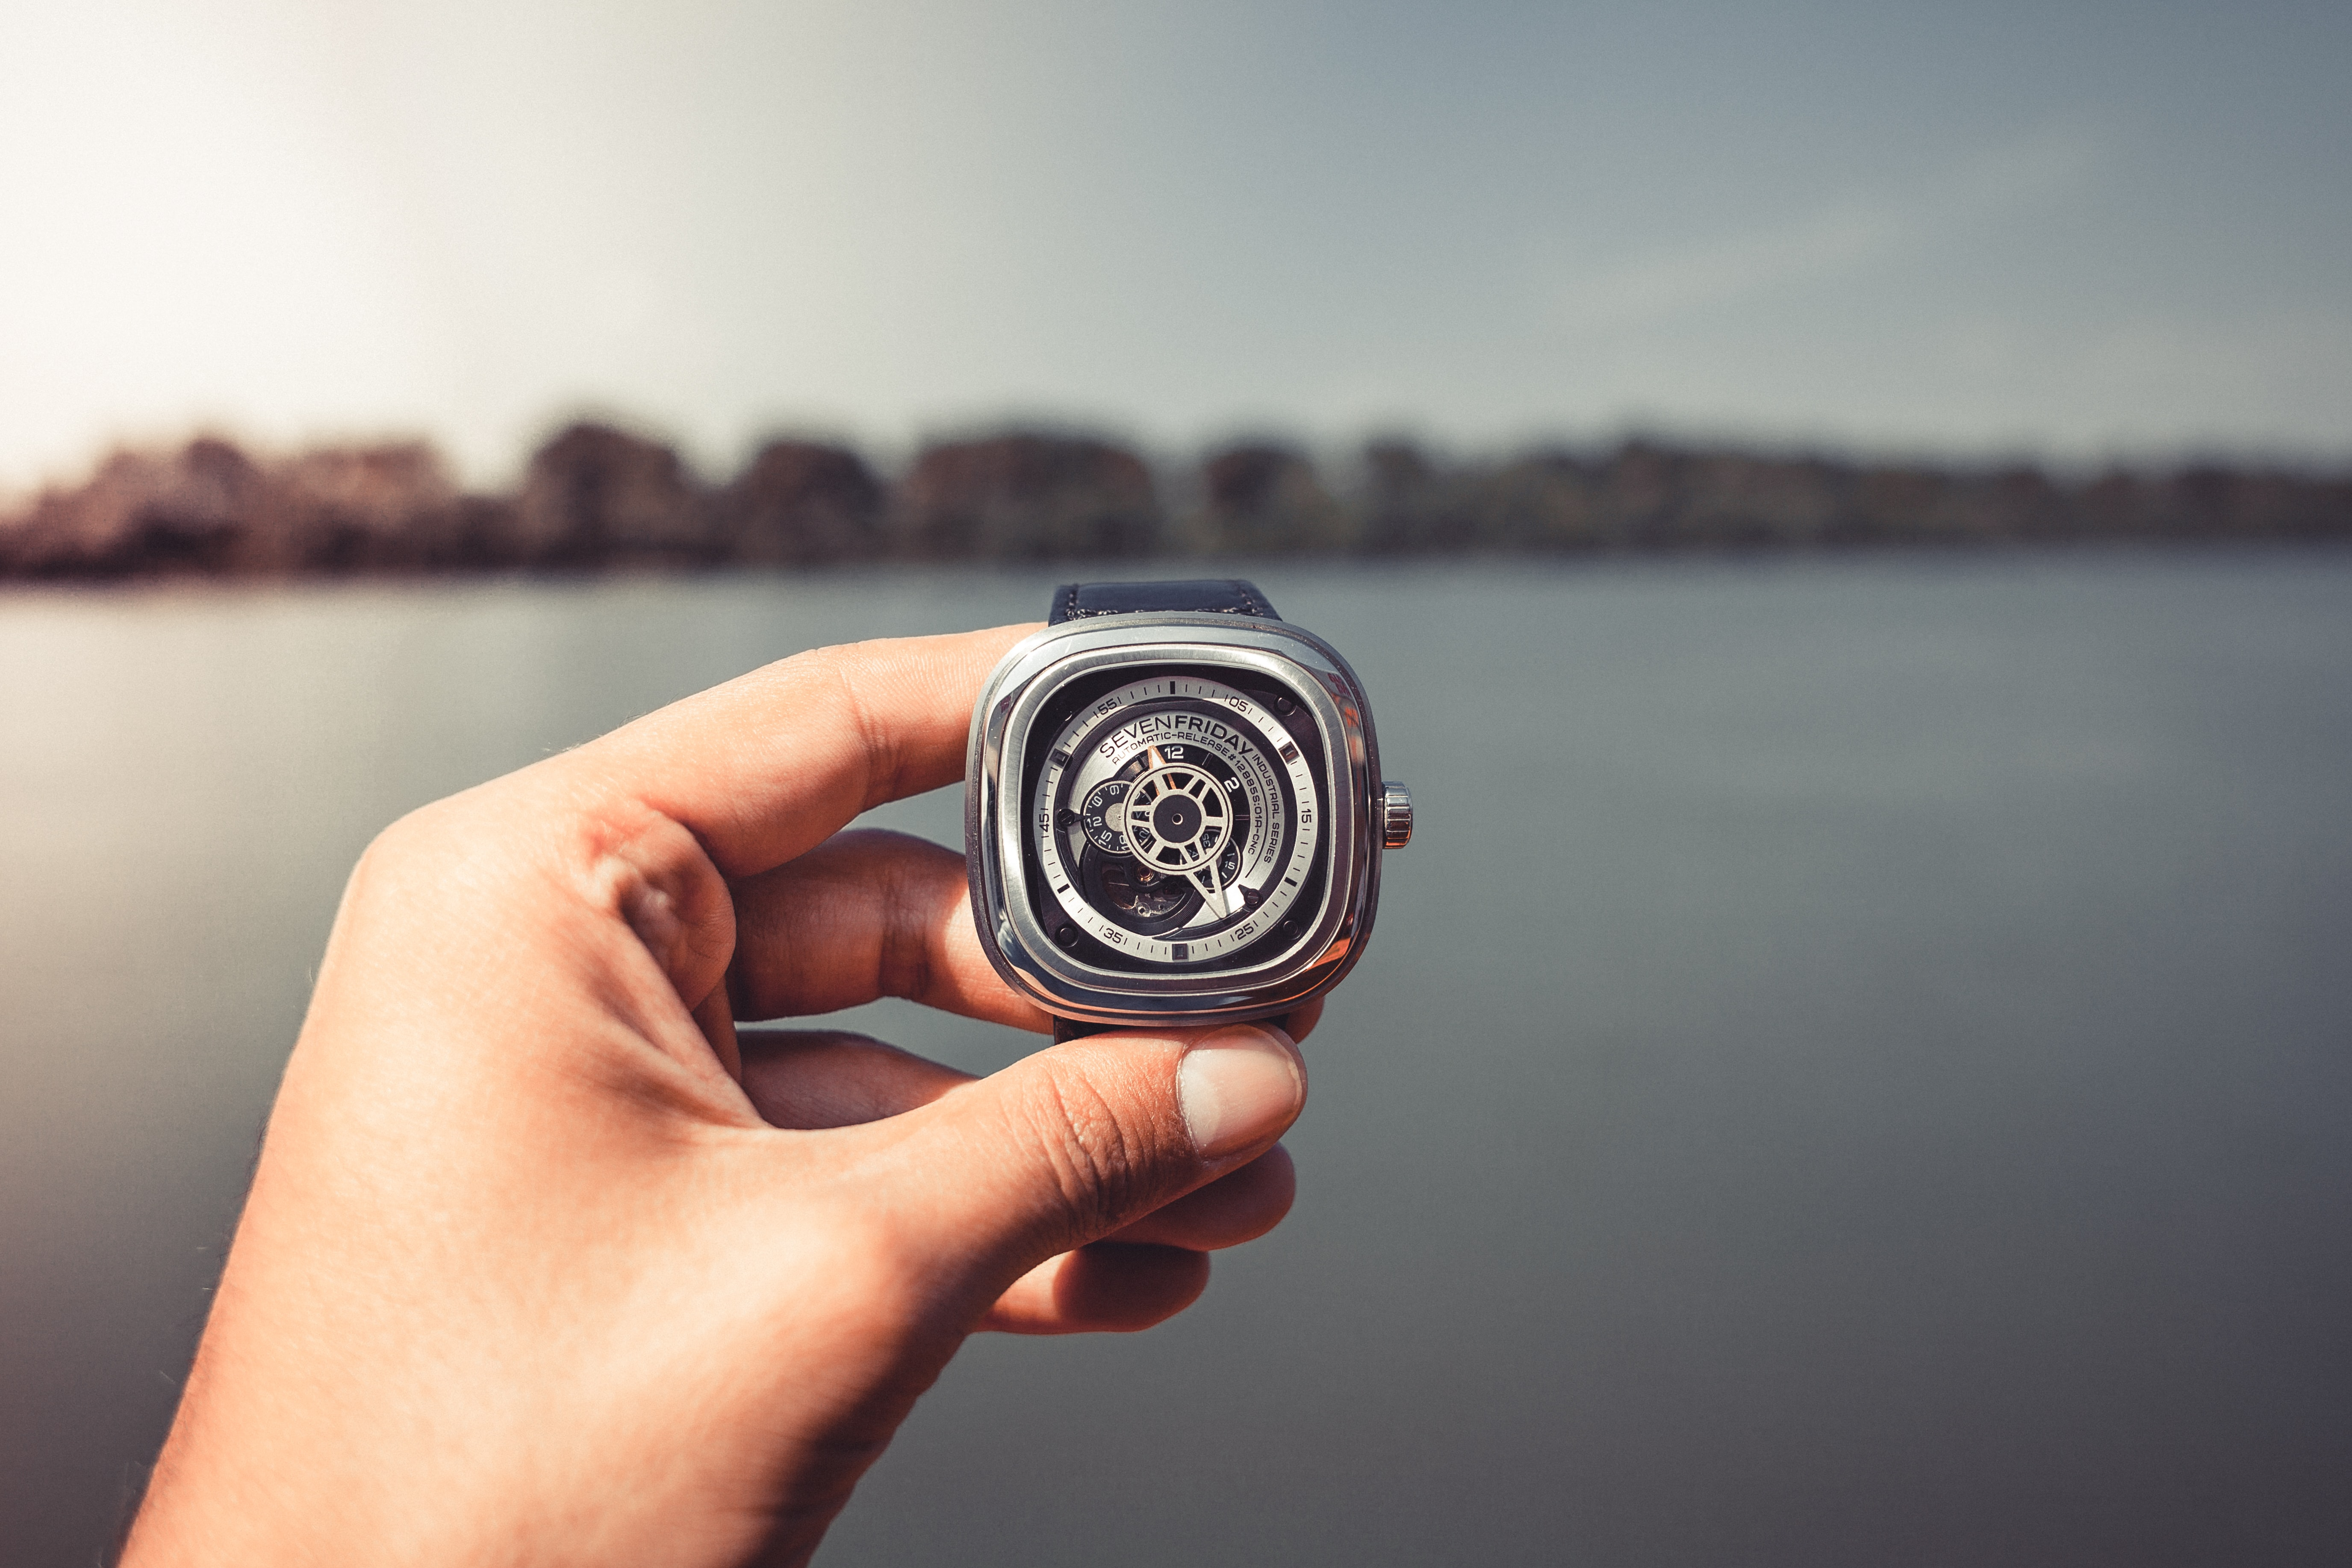 Hand holding a modern watch with gears showing in front of a city skyline and water